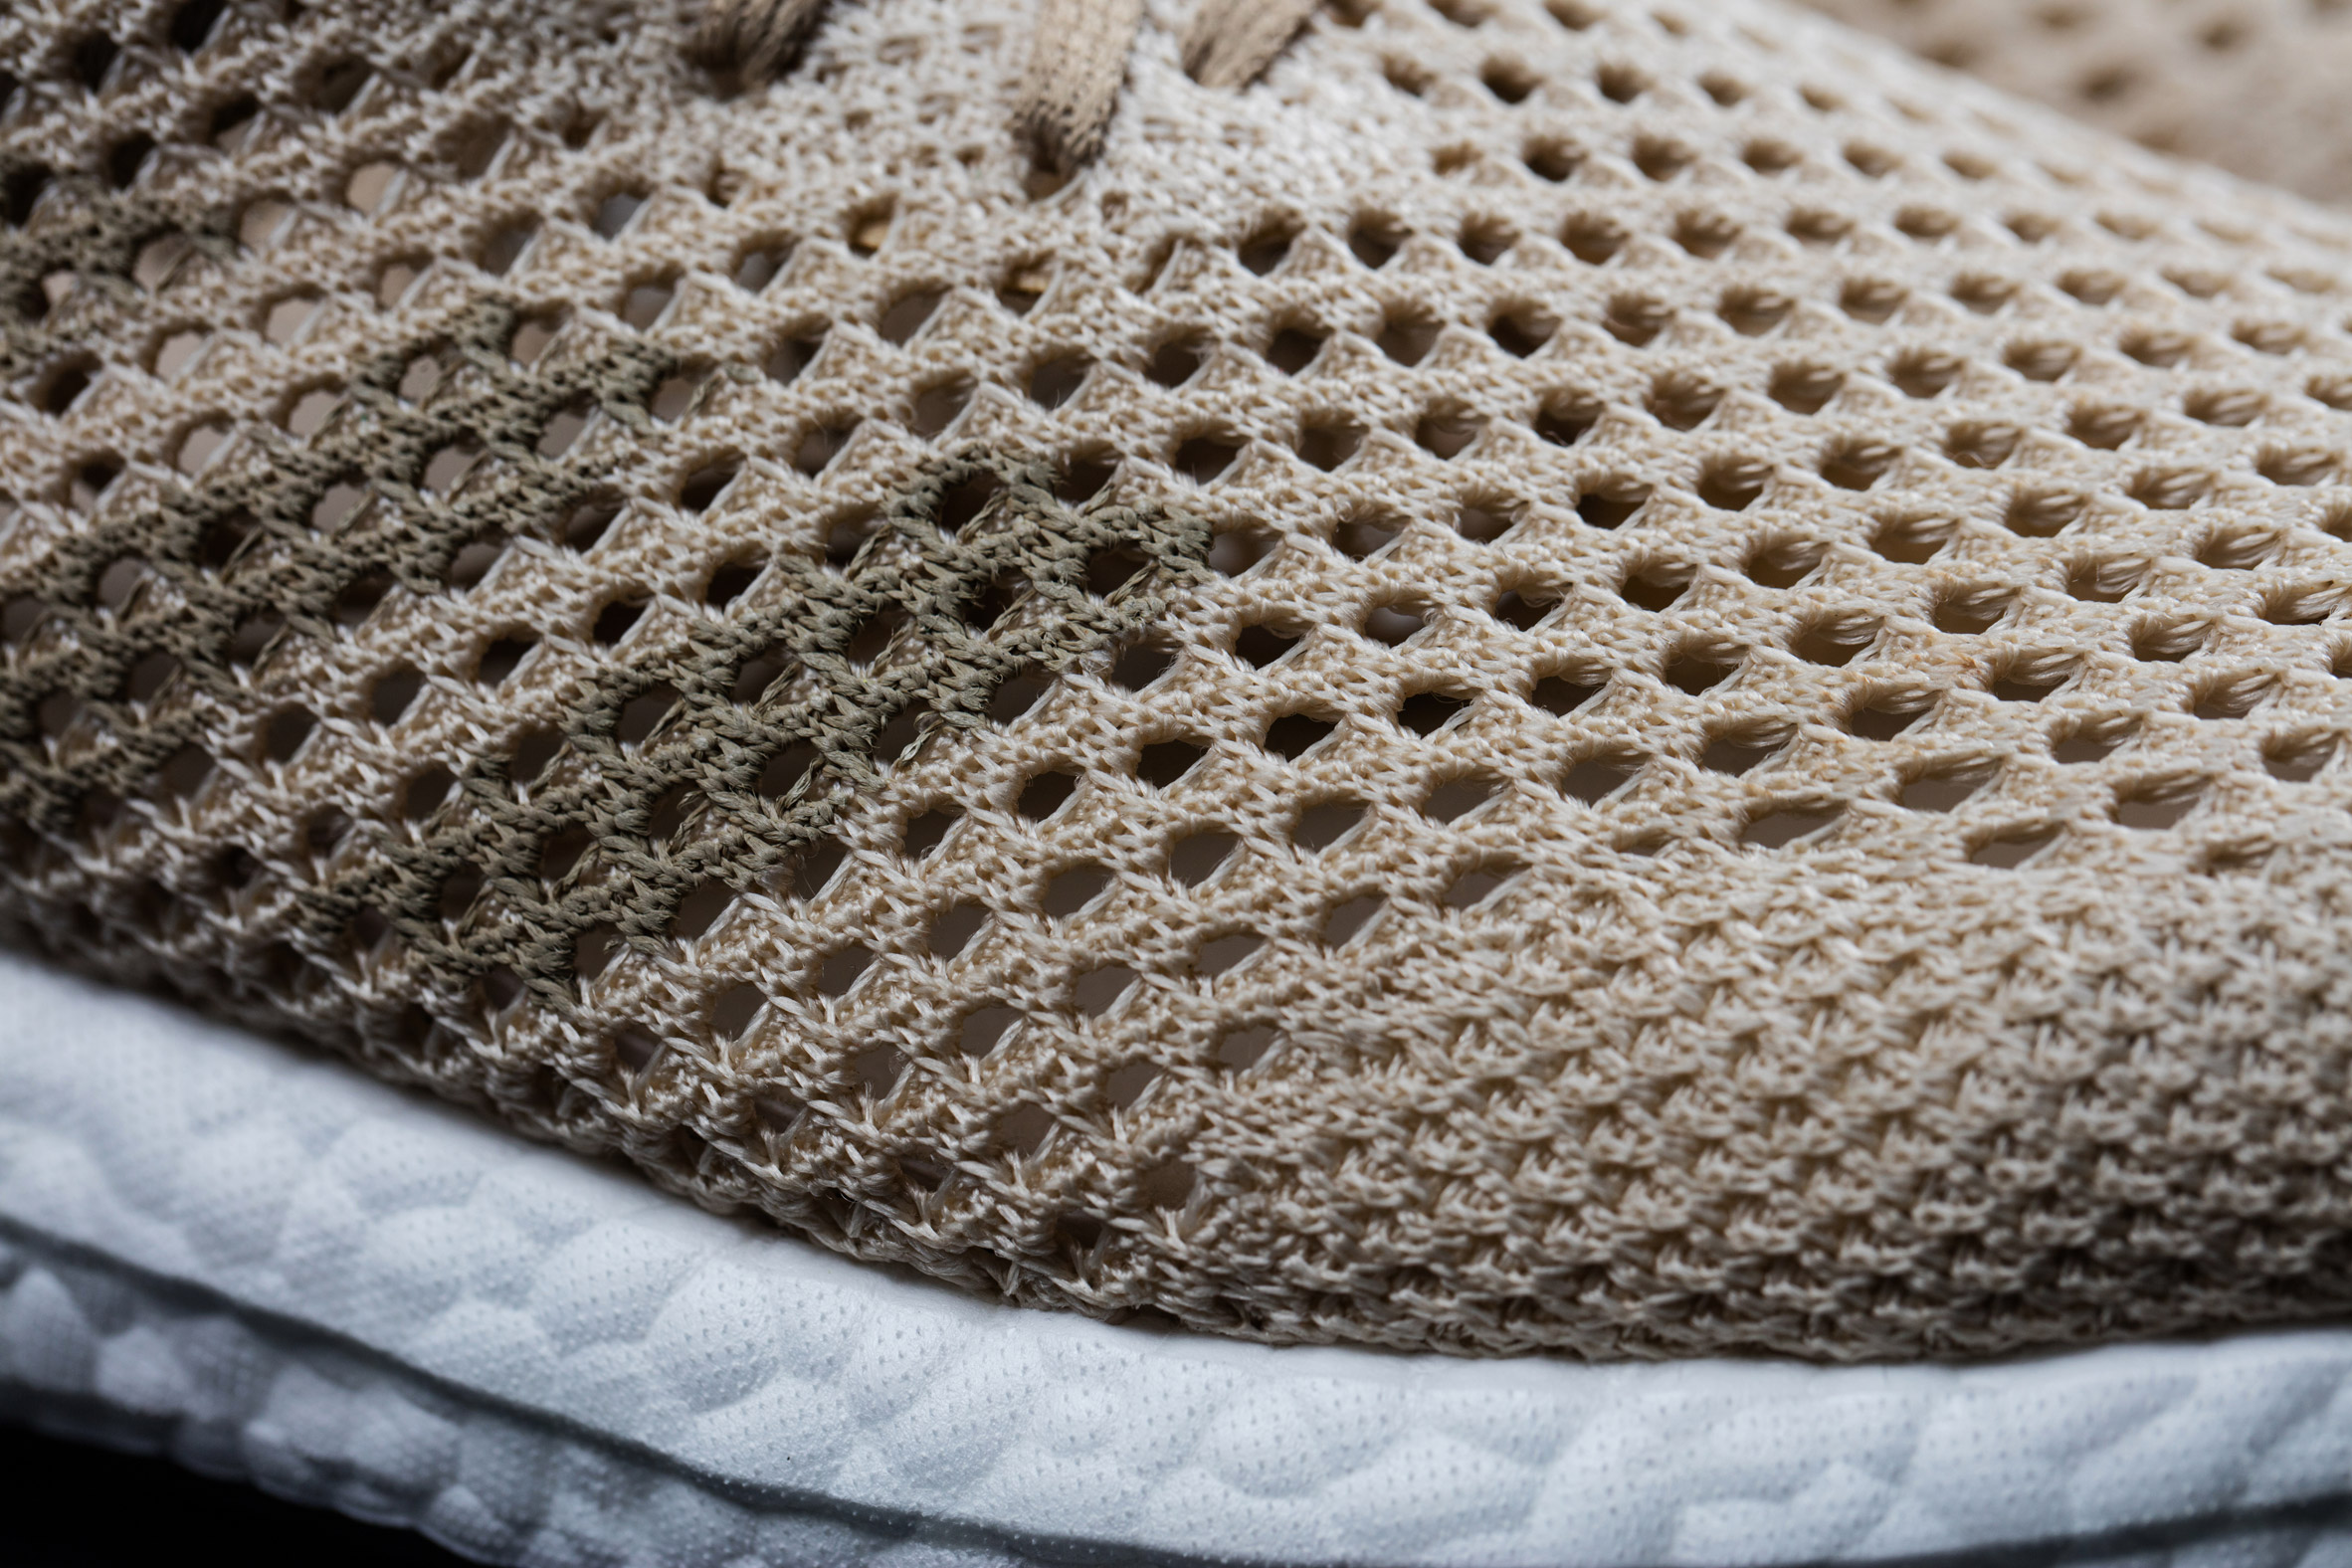 pretty nice 27994 3a810 Adidas Biosteel trainers biodegradable fabric shoes fashion design. Image  Adidas  Dezeen